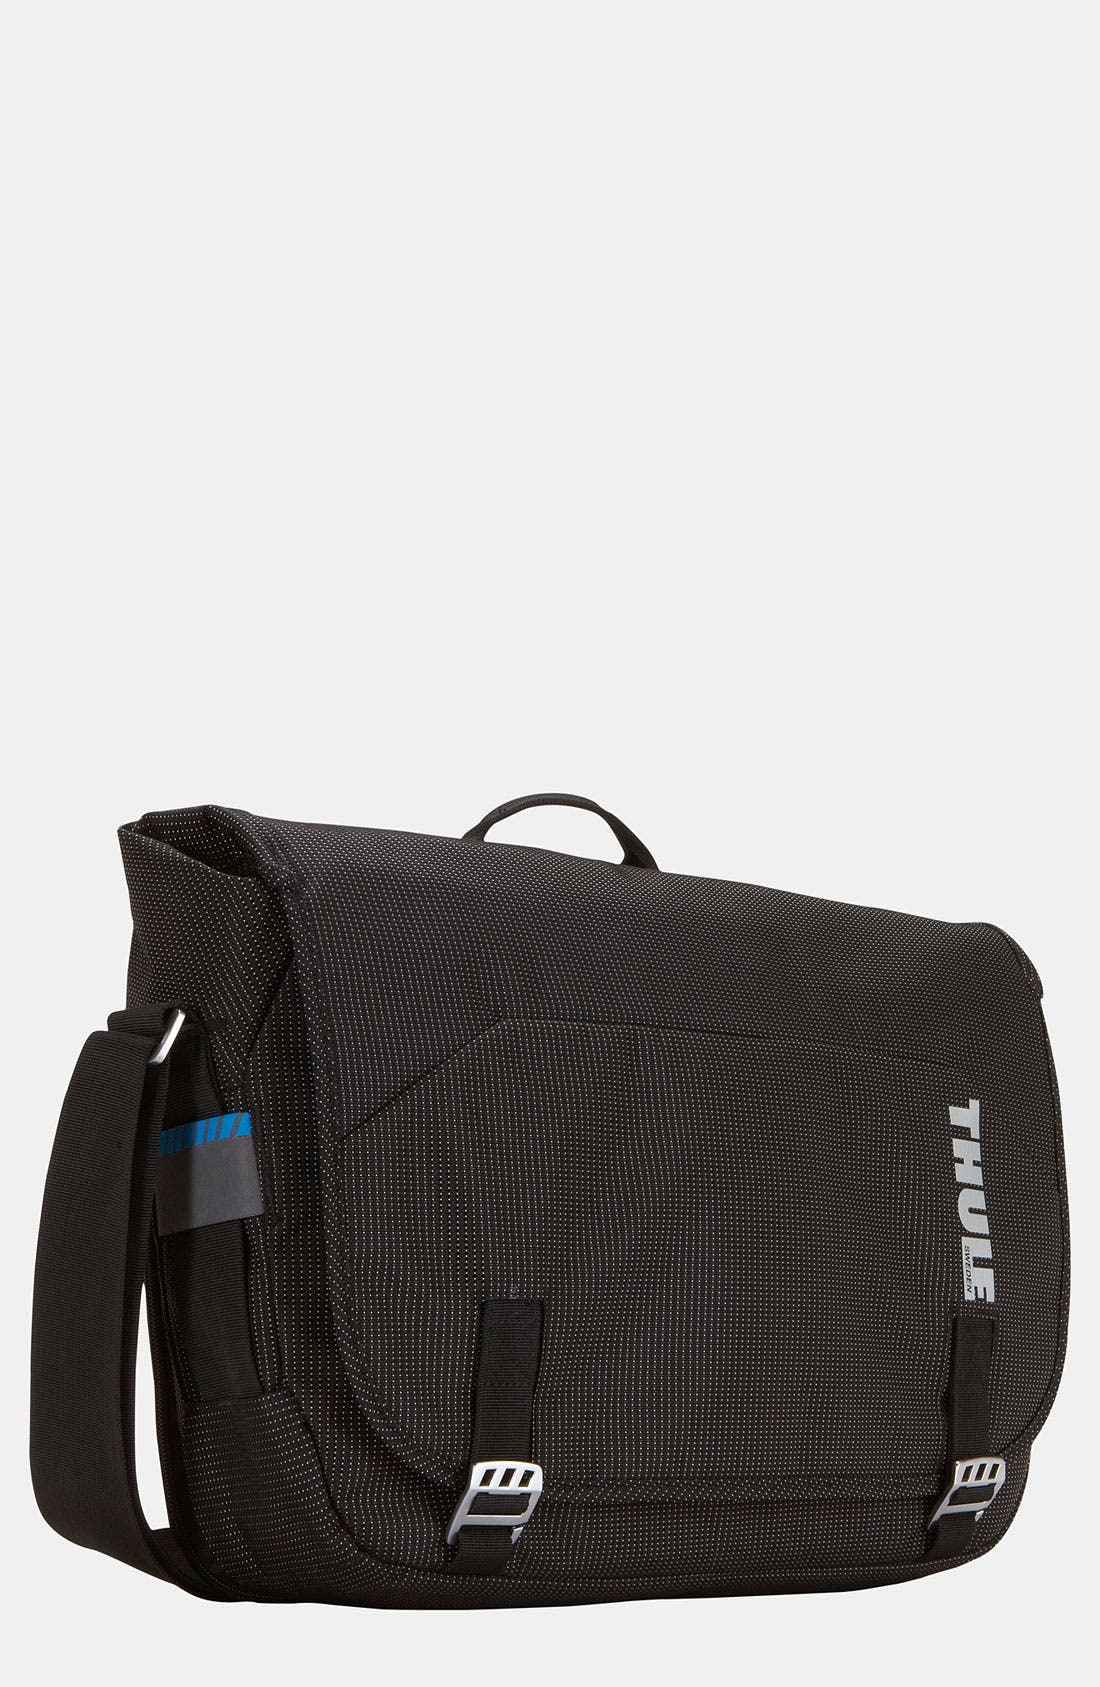 Main Image - Thule 'Crossover' Messenger Bag